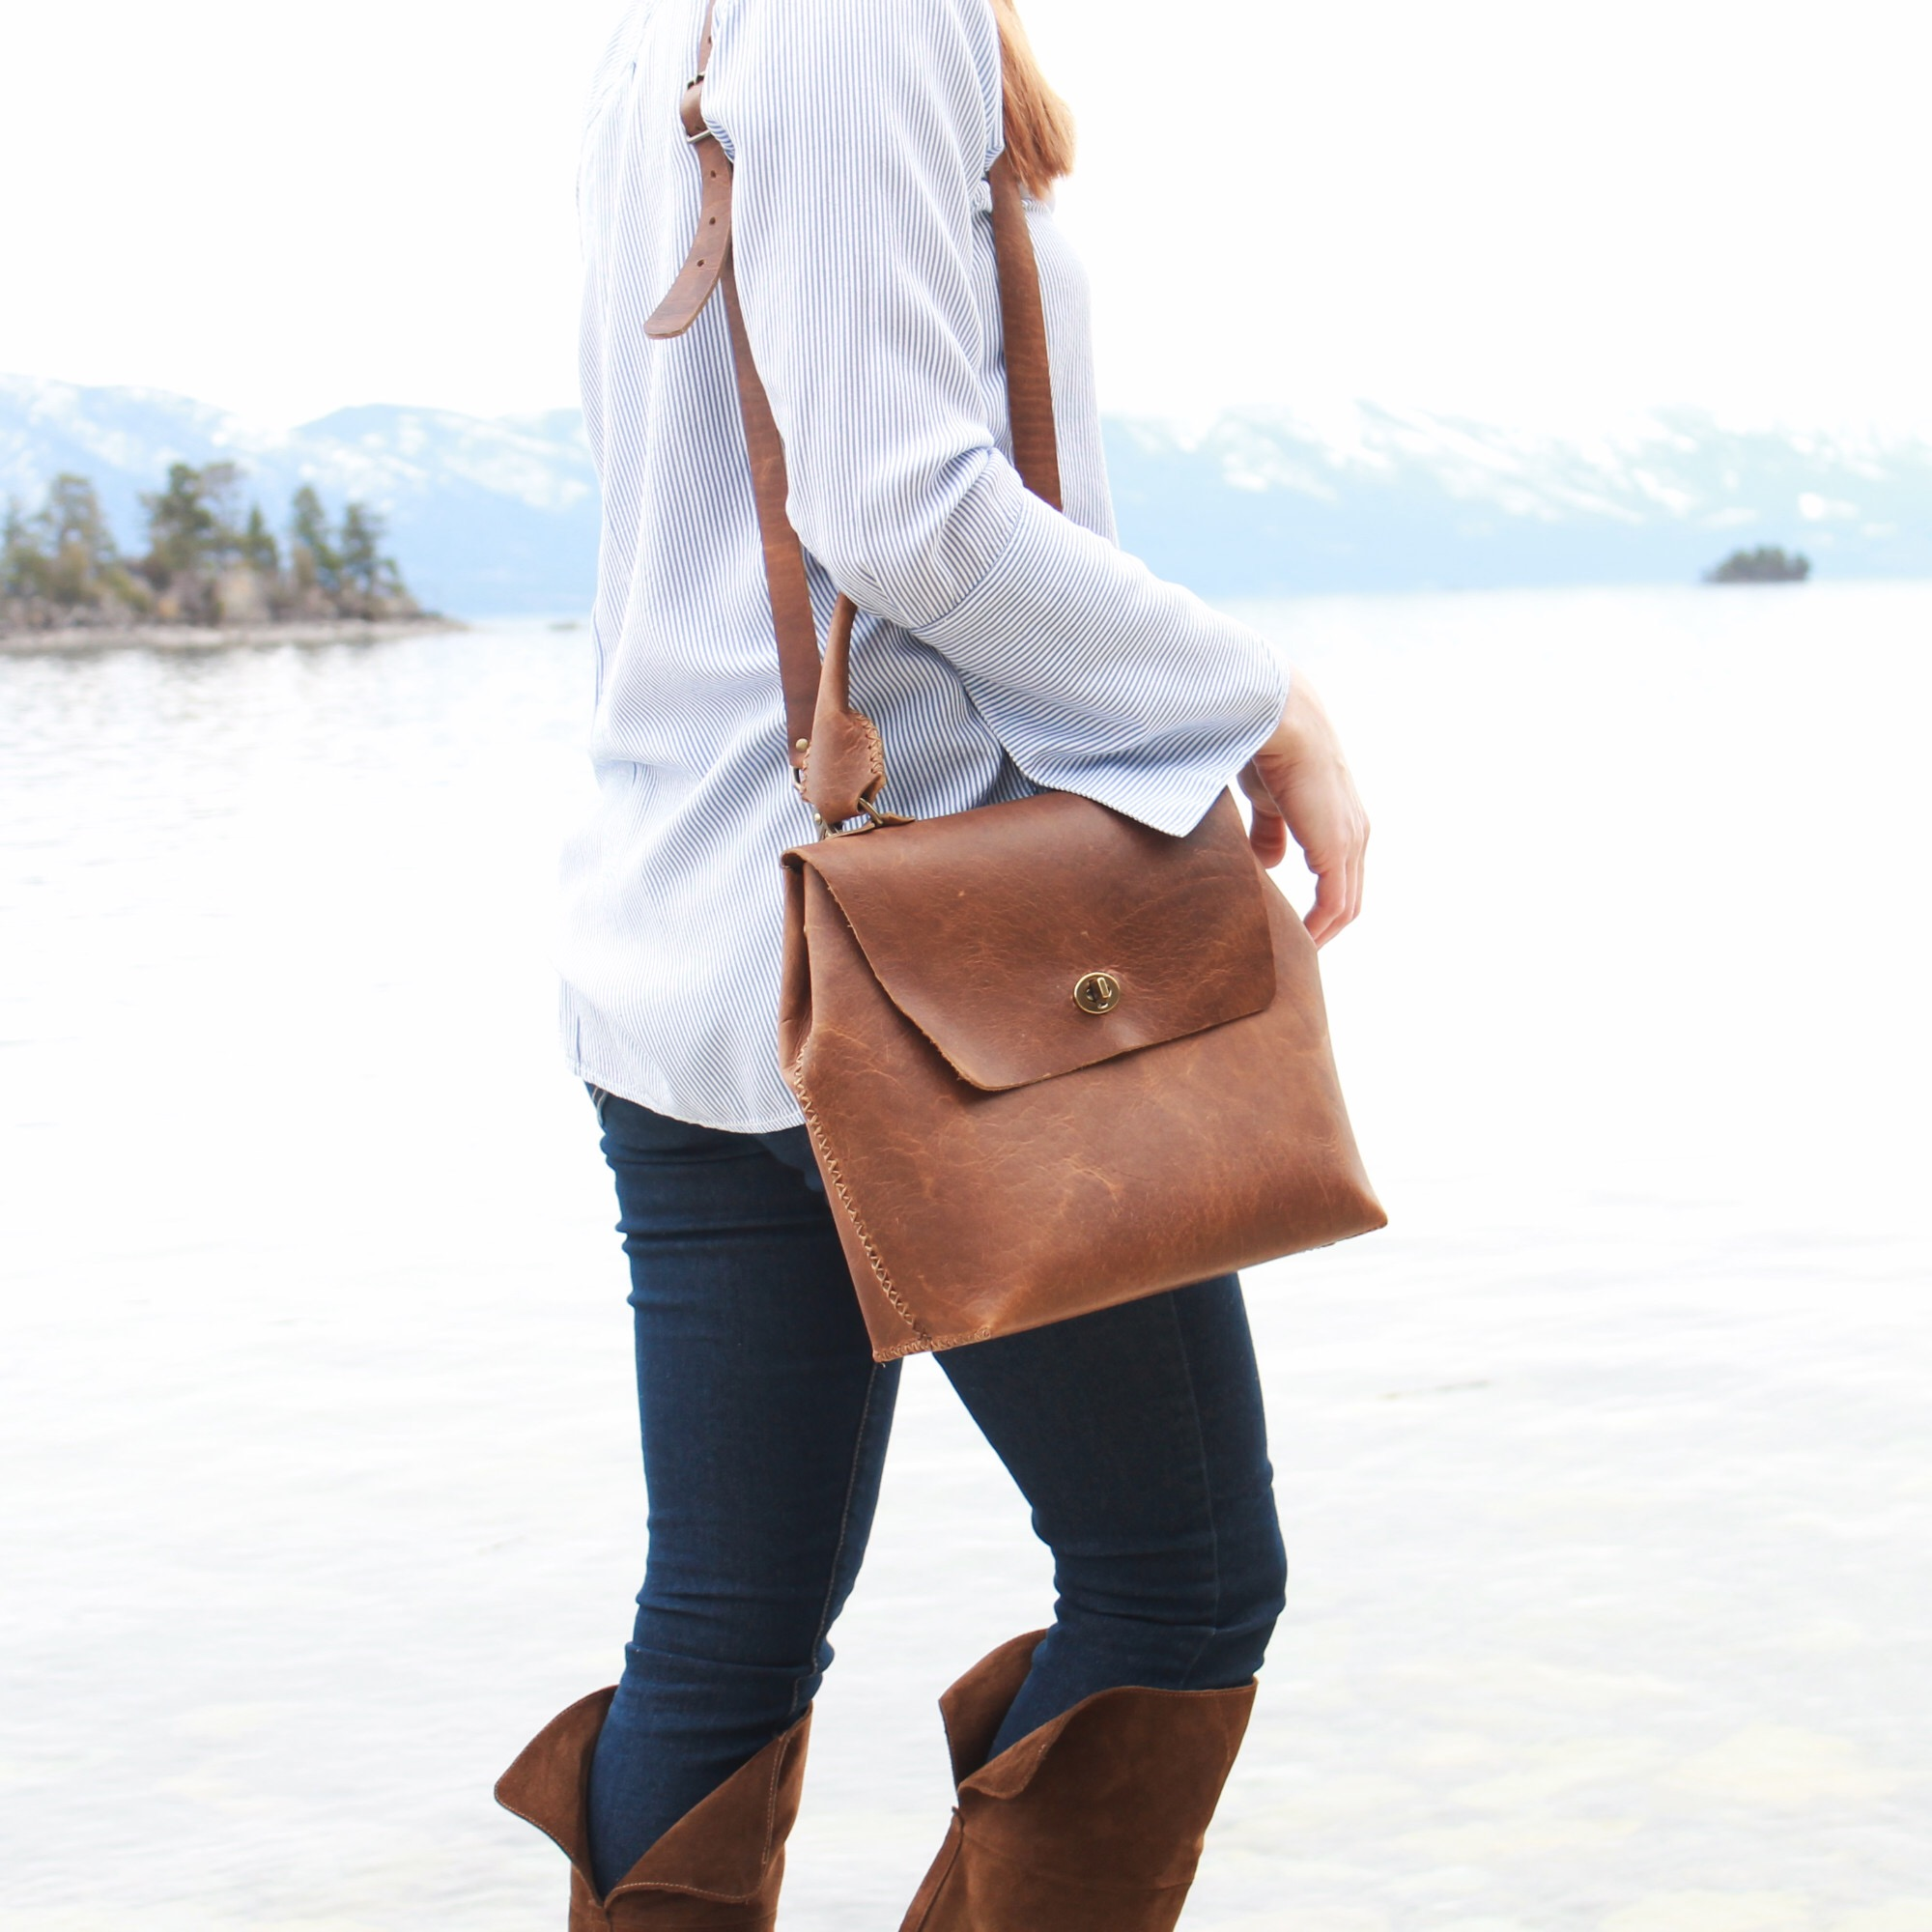 The Hathaway Bag by Beargrass Leather  Artisanal Leather Goods Handmade in the USA